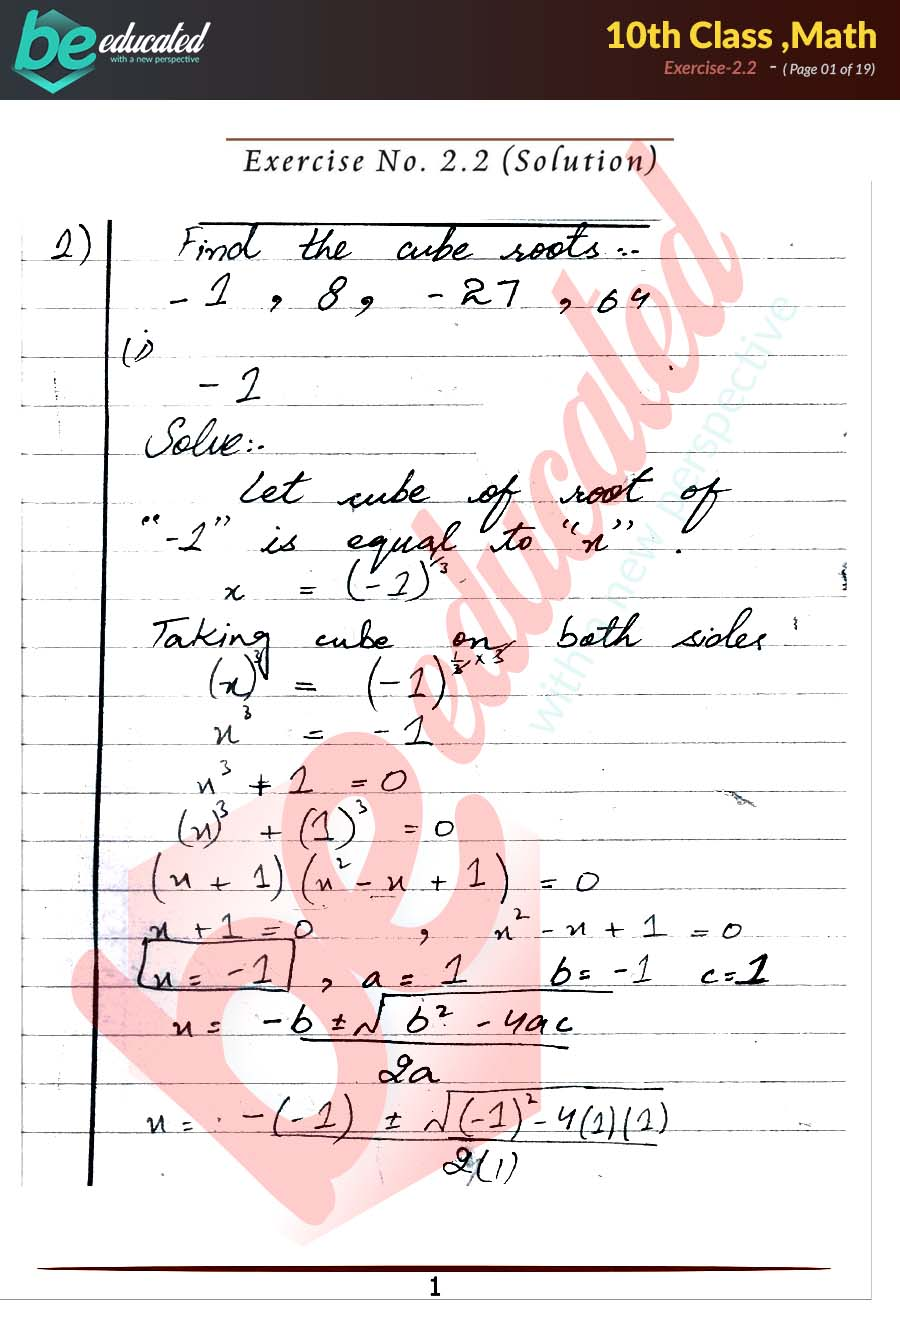 Exercise 2 2 Math 10th Class Notes - Matric Part 2 Notes